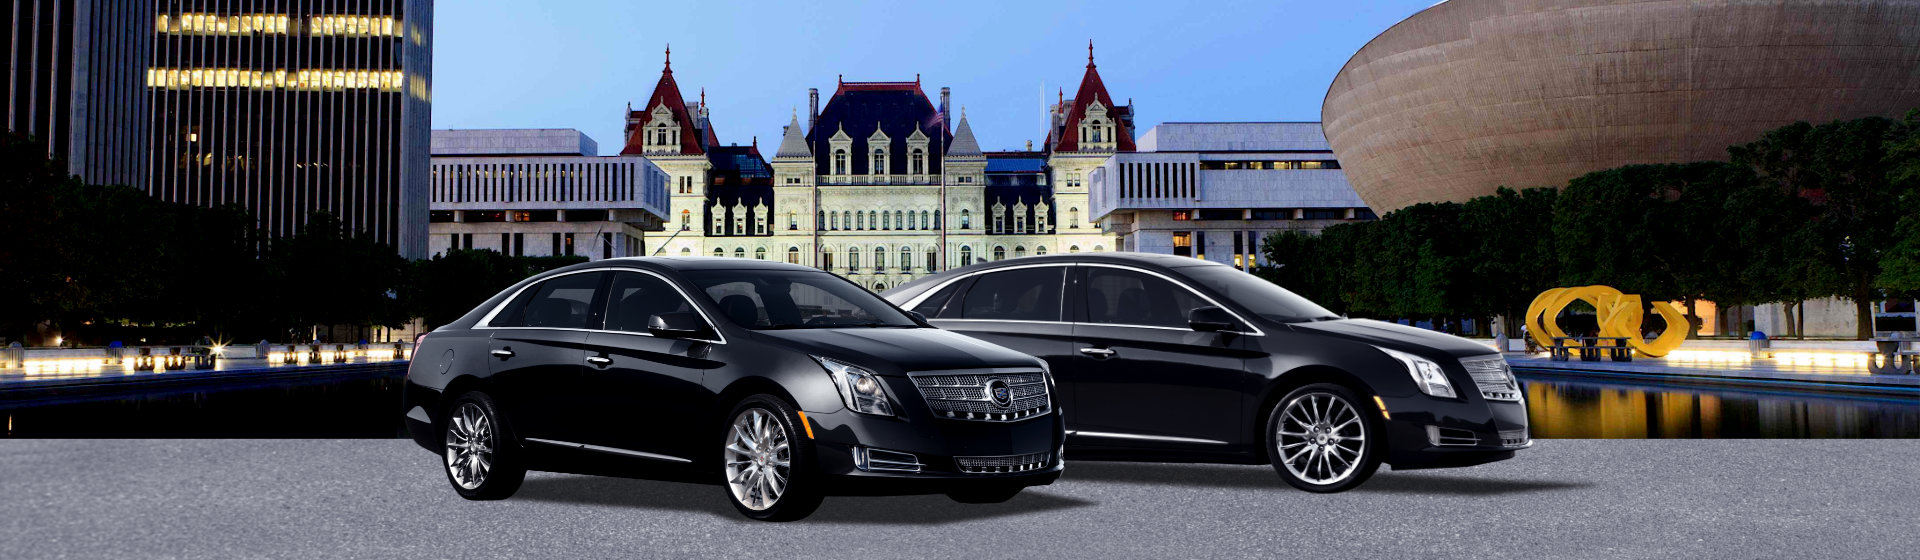 Albany Car and Limousine Services